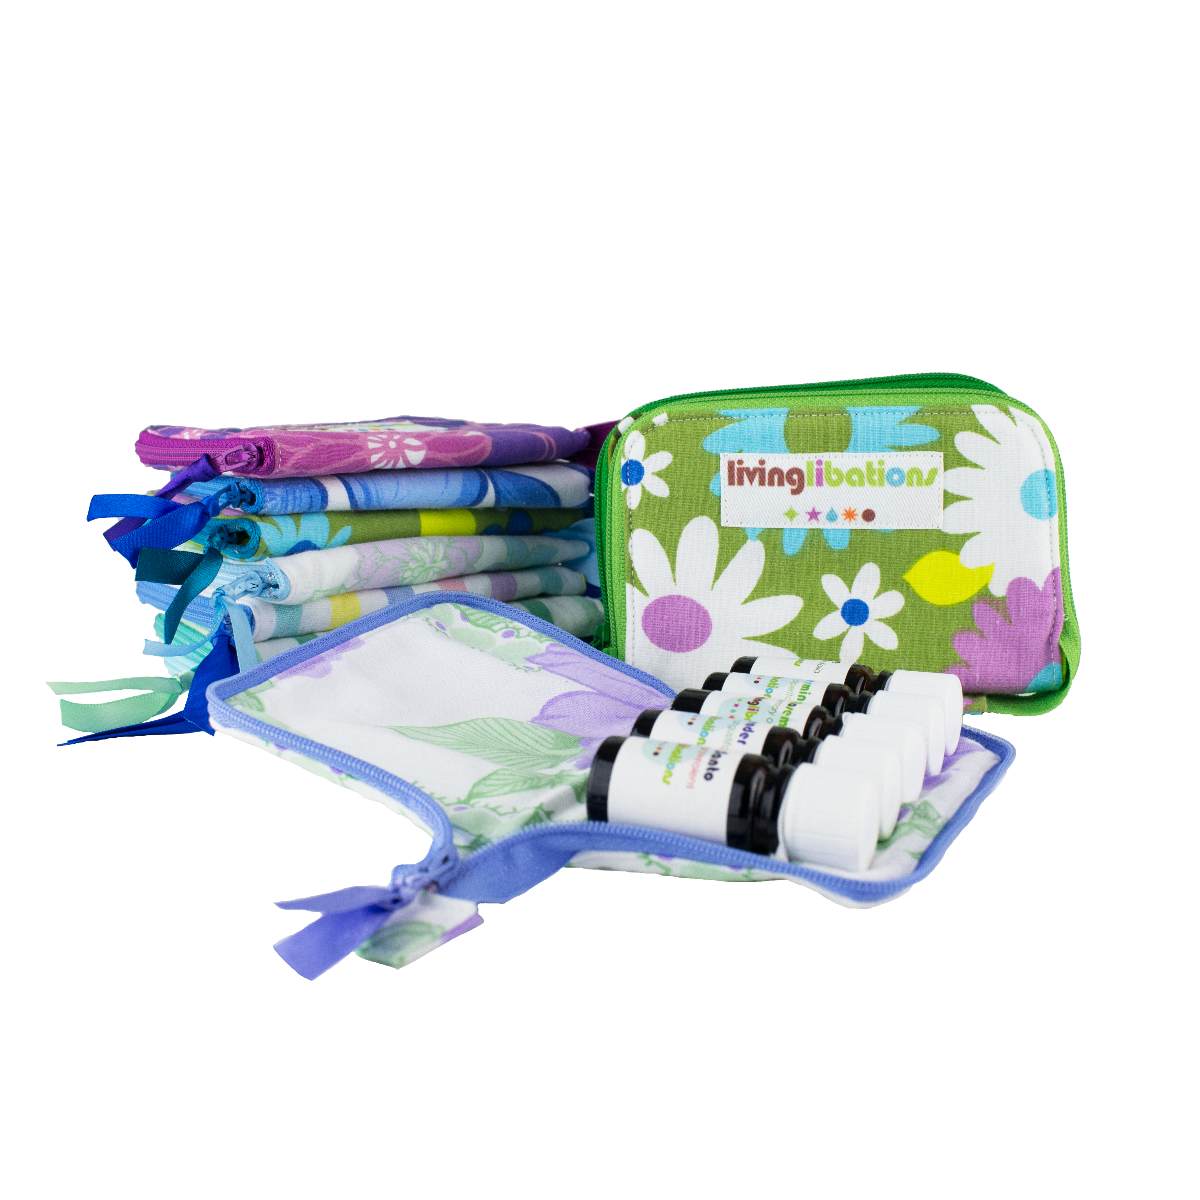 Essential Oil Kit Bags